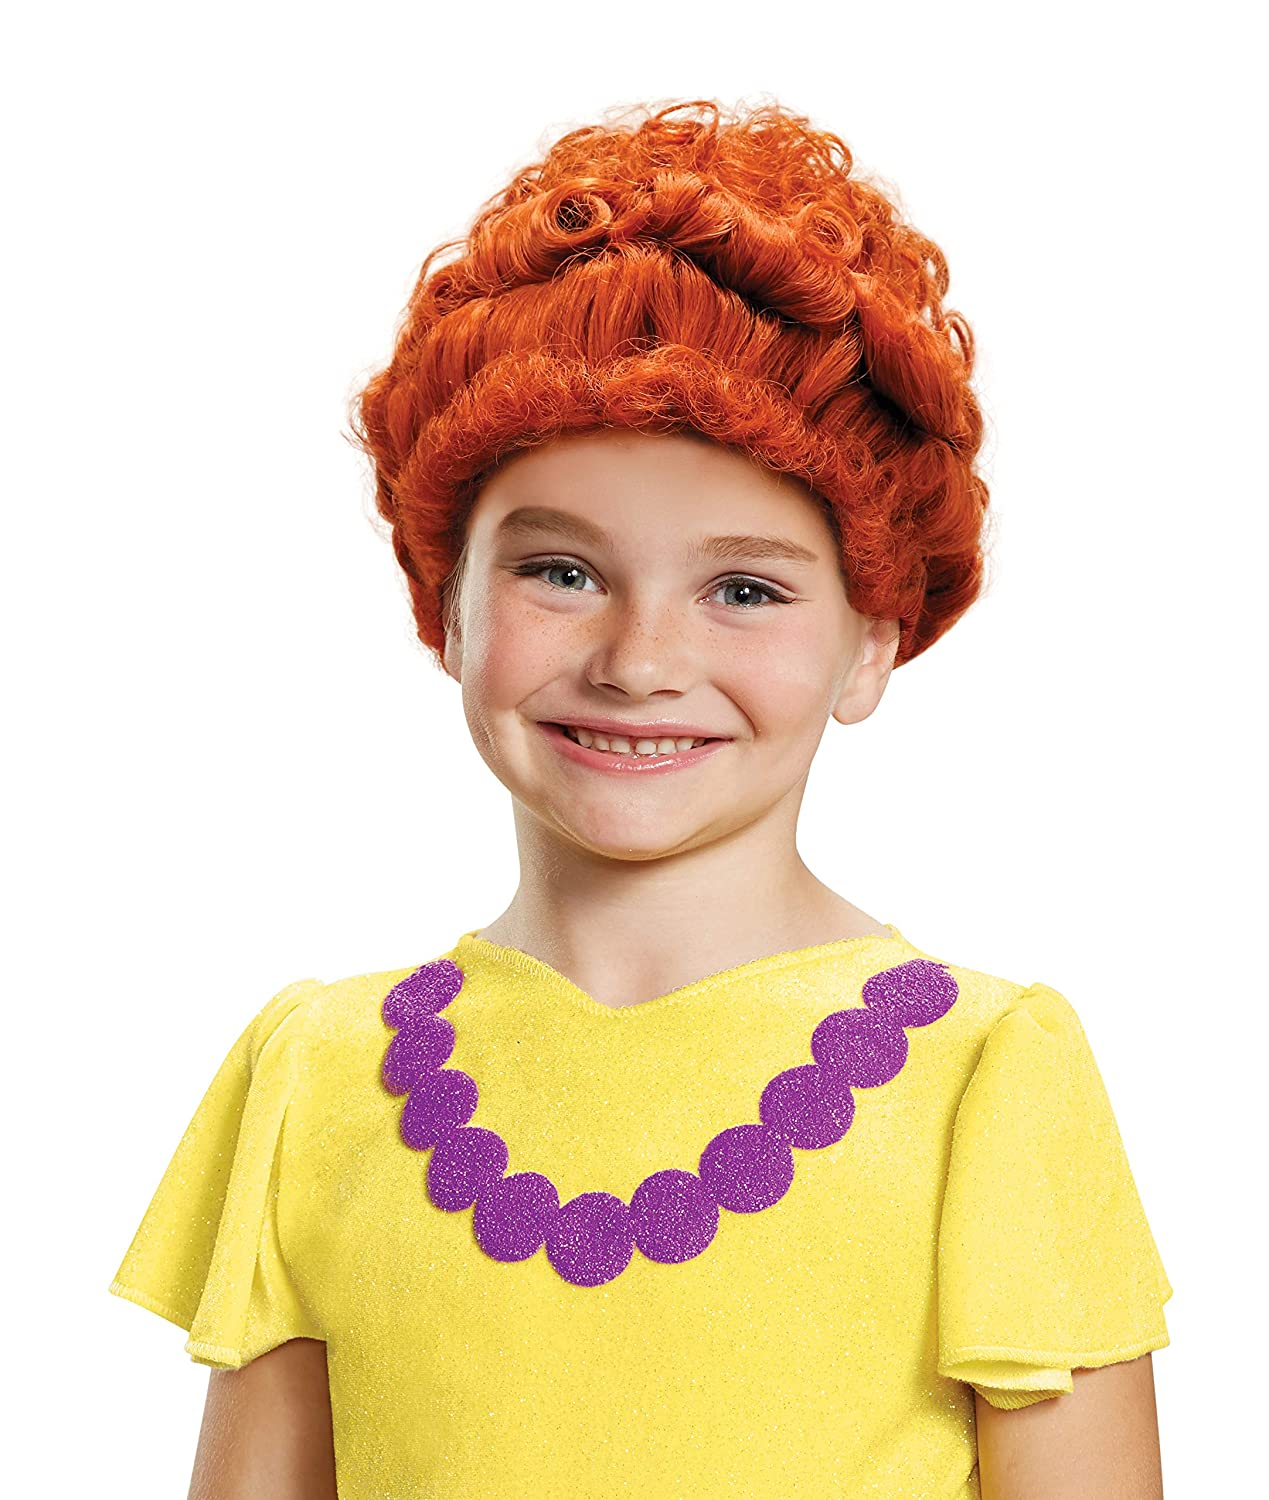 Amazon.com: Disguise - Peluca de Halloween para niñas: Toys ...